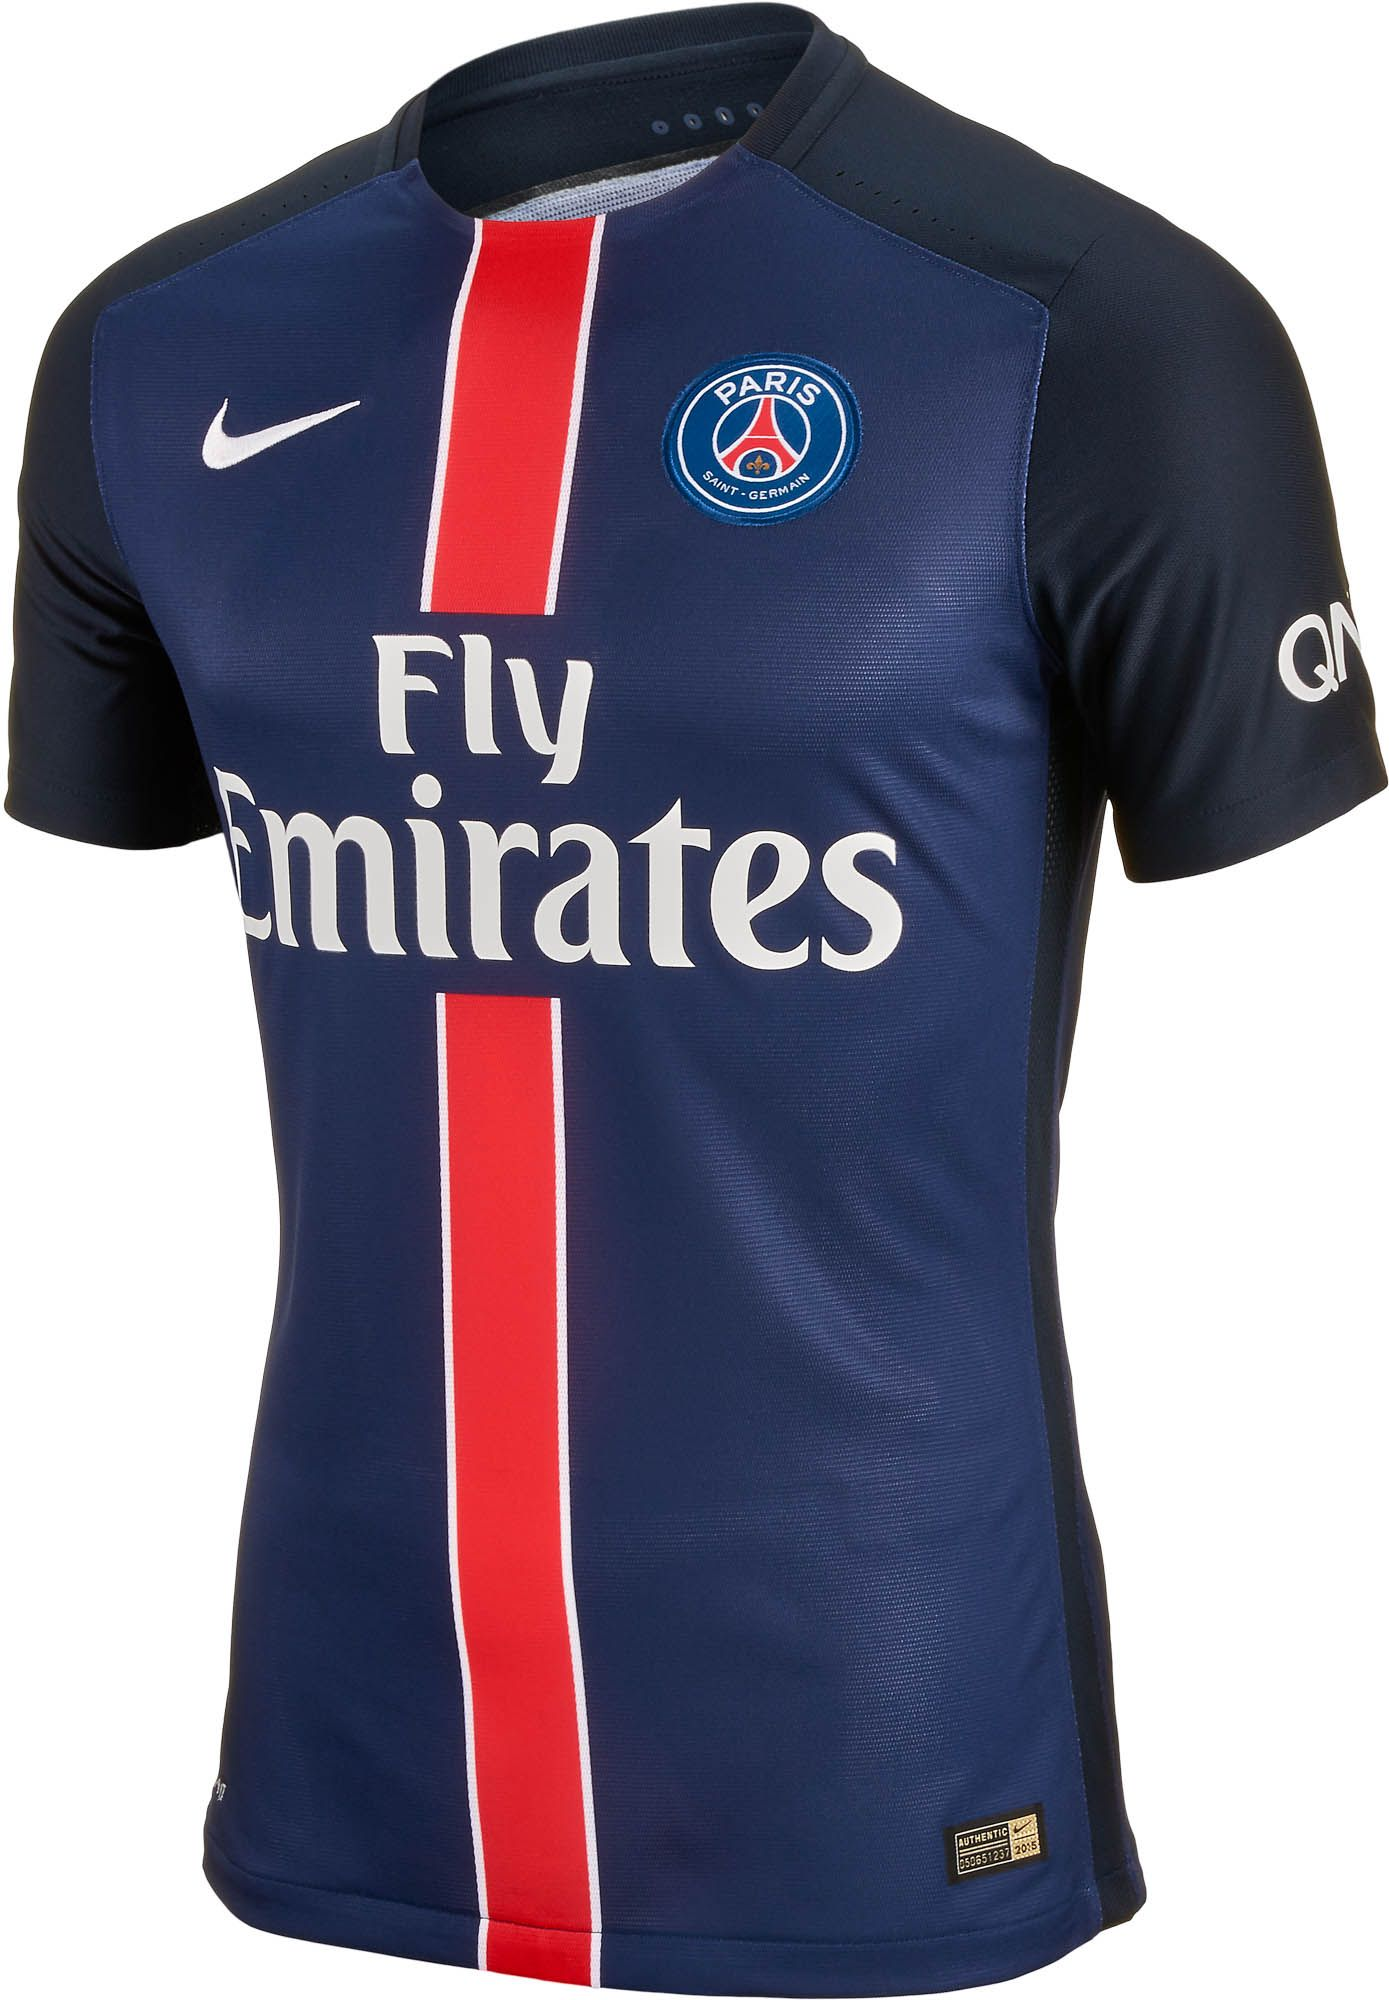 Coming to SoccerPro on May 27th! The new 2015/16 PSG Home ...